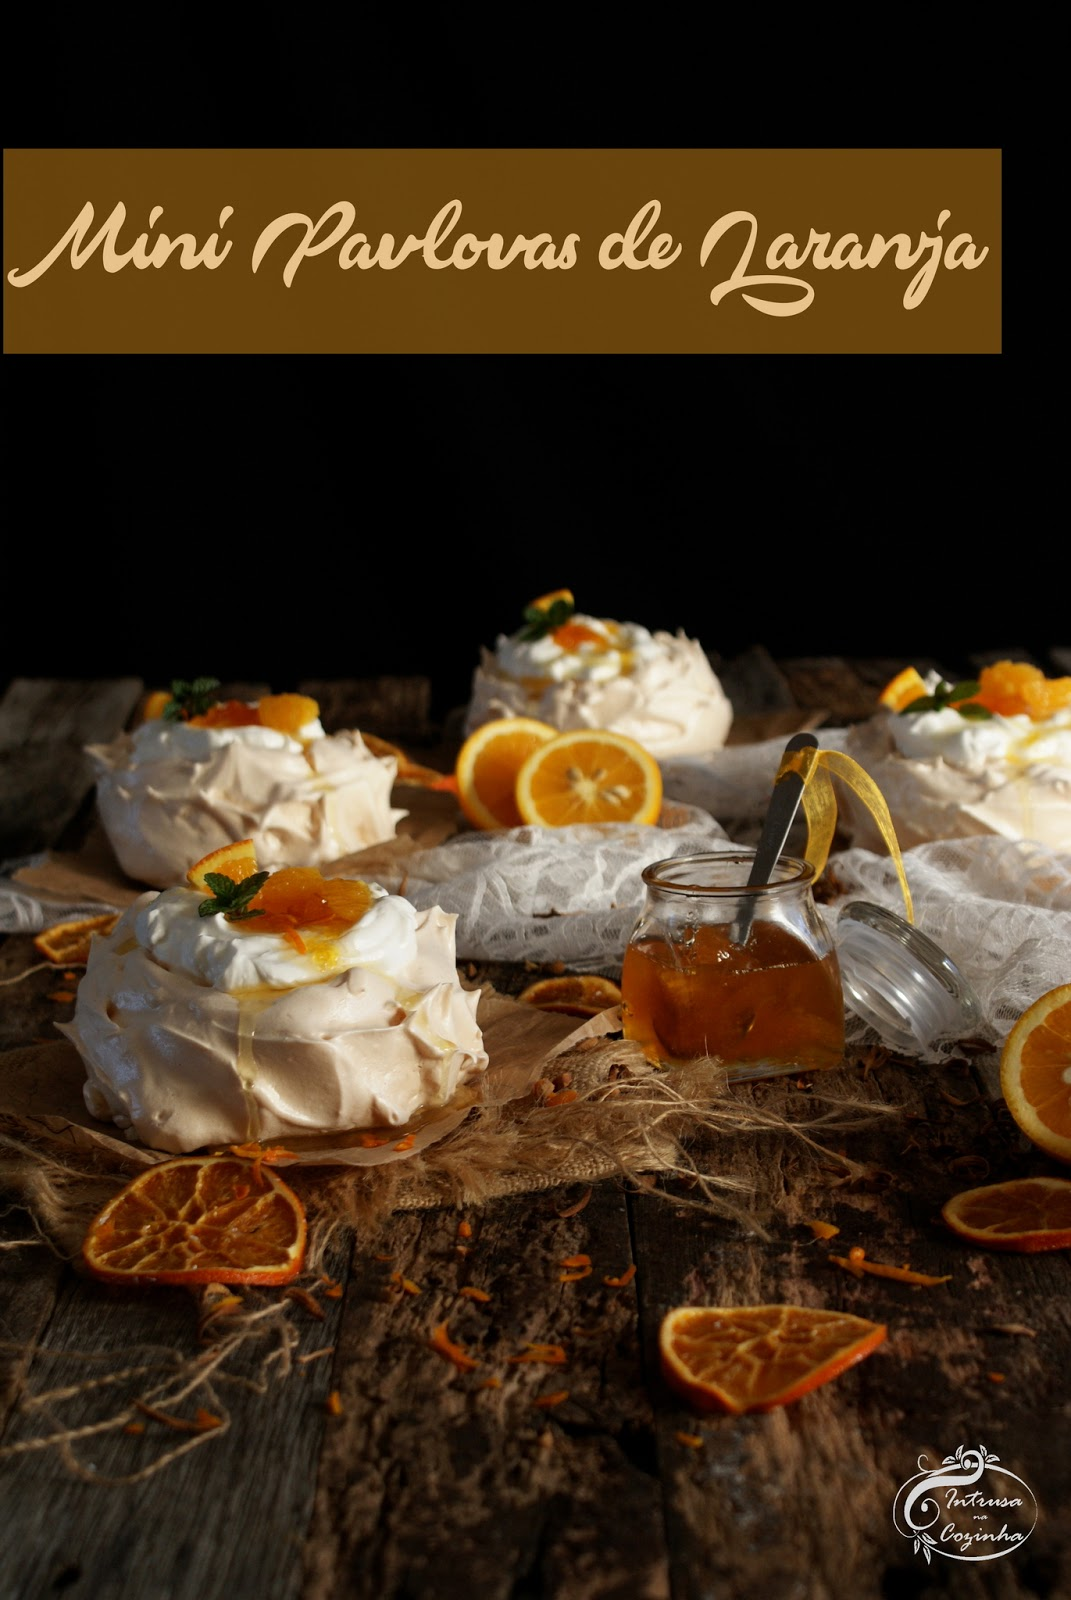 Mini Pavlovas de Laranja {Mini Pavlovas with Orange}